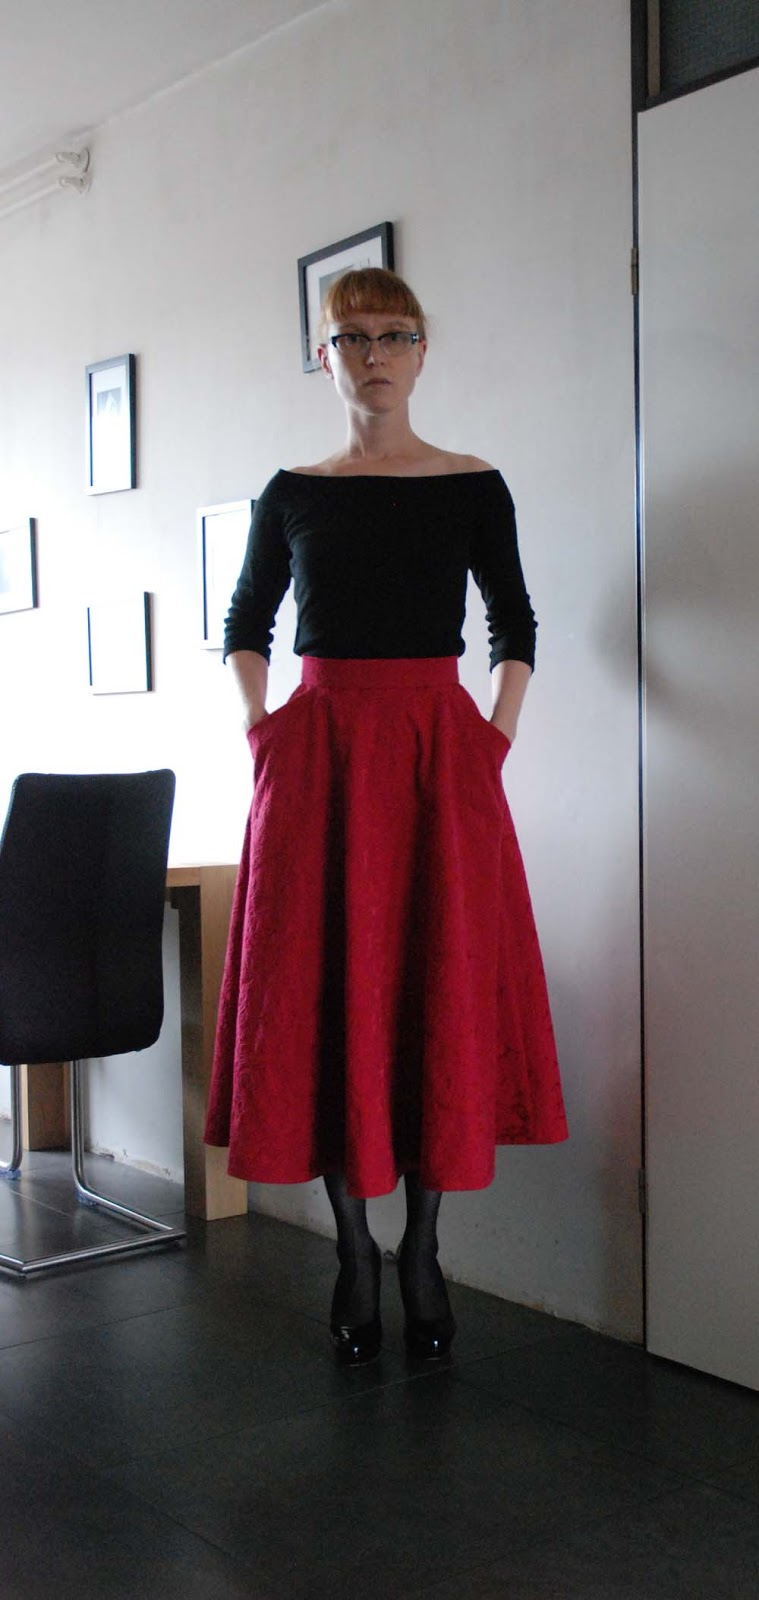 petit main sauvage: These unflattering long skirts...